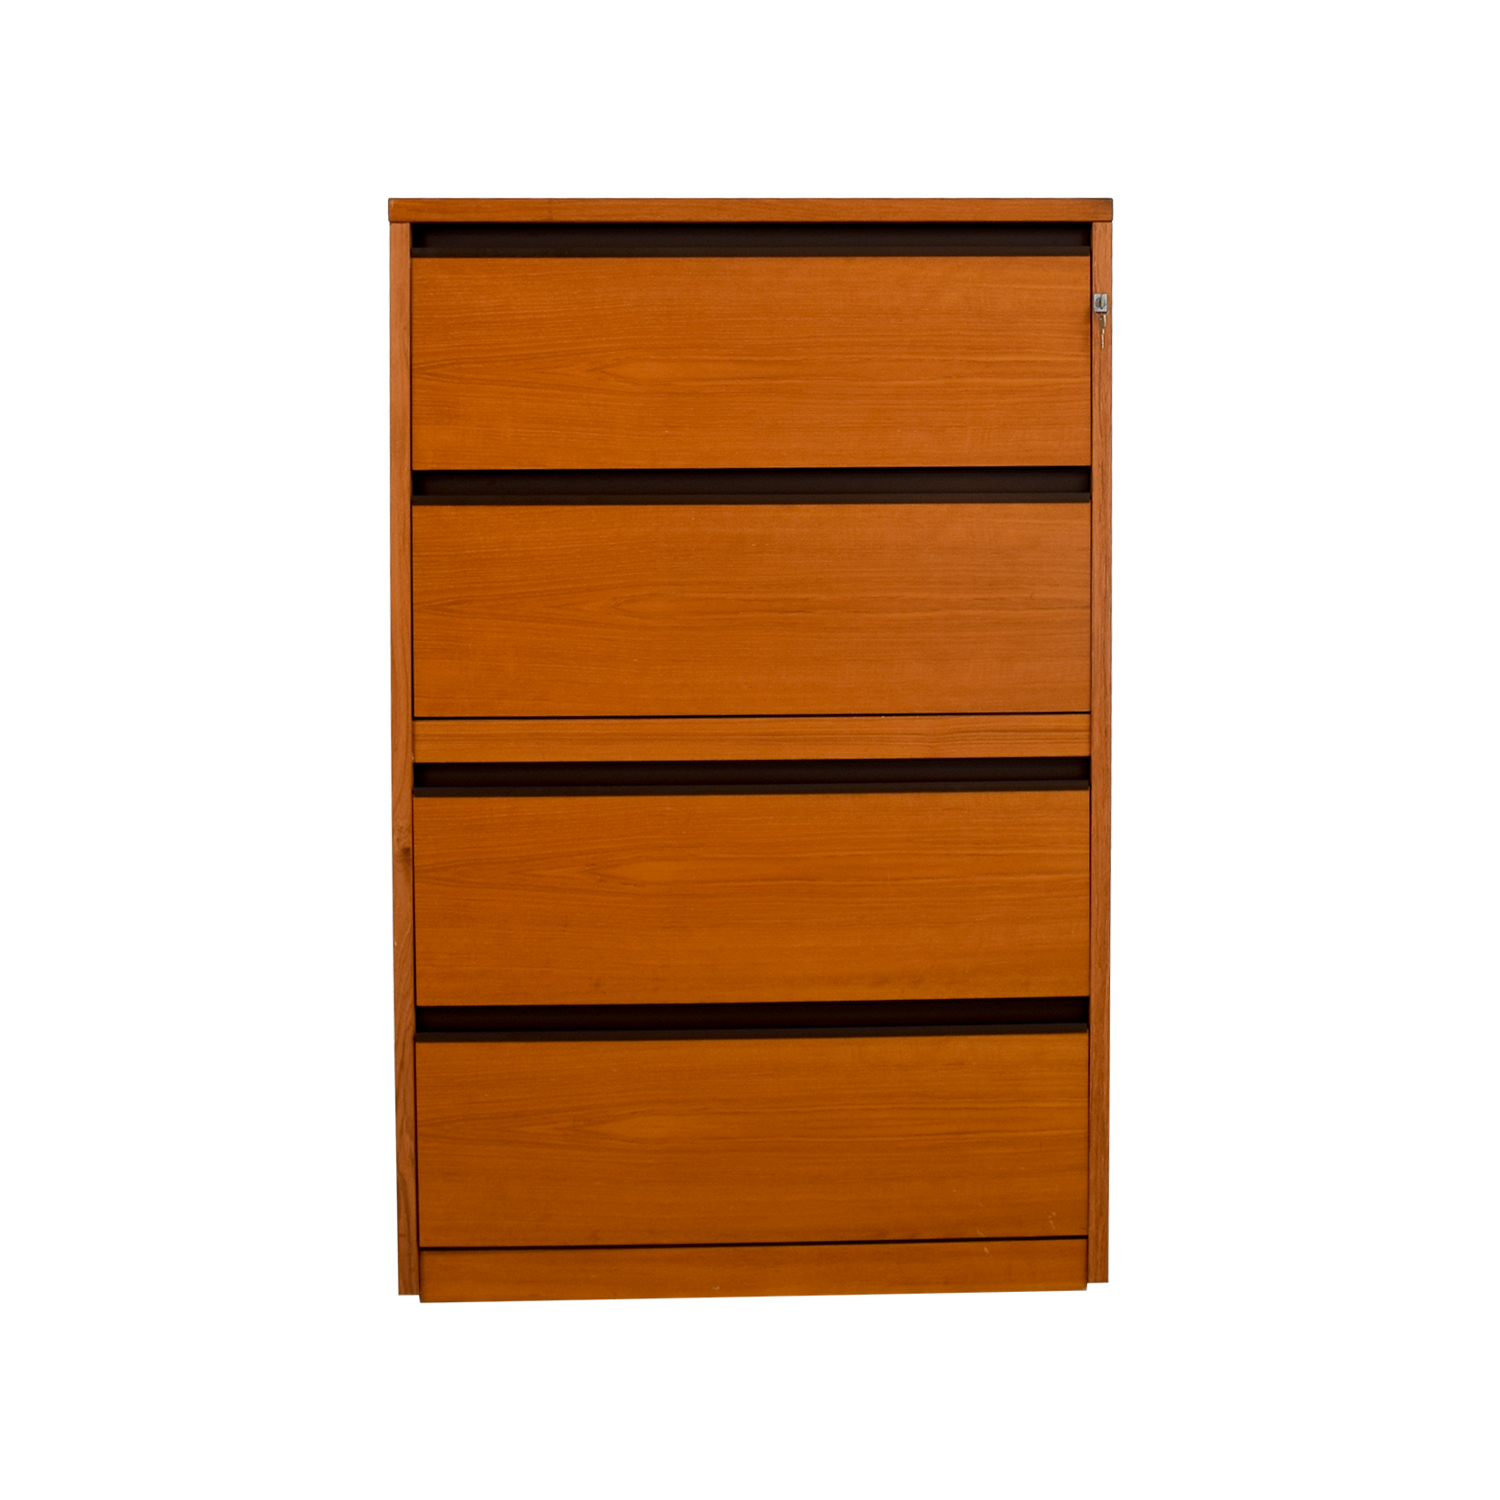 Four-Drawer Wood Dresser